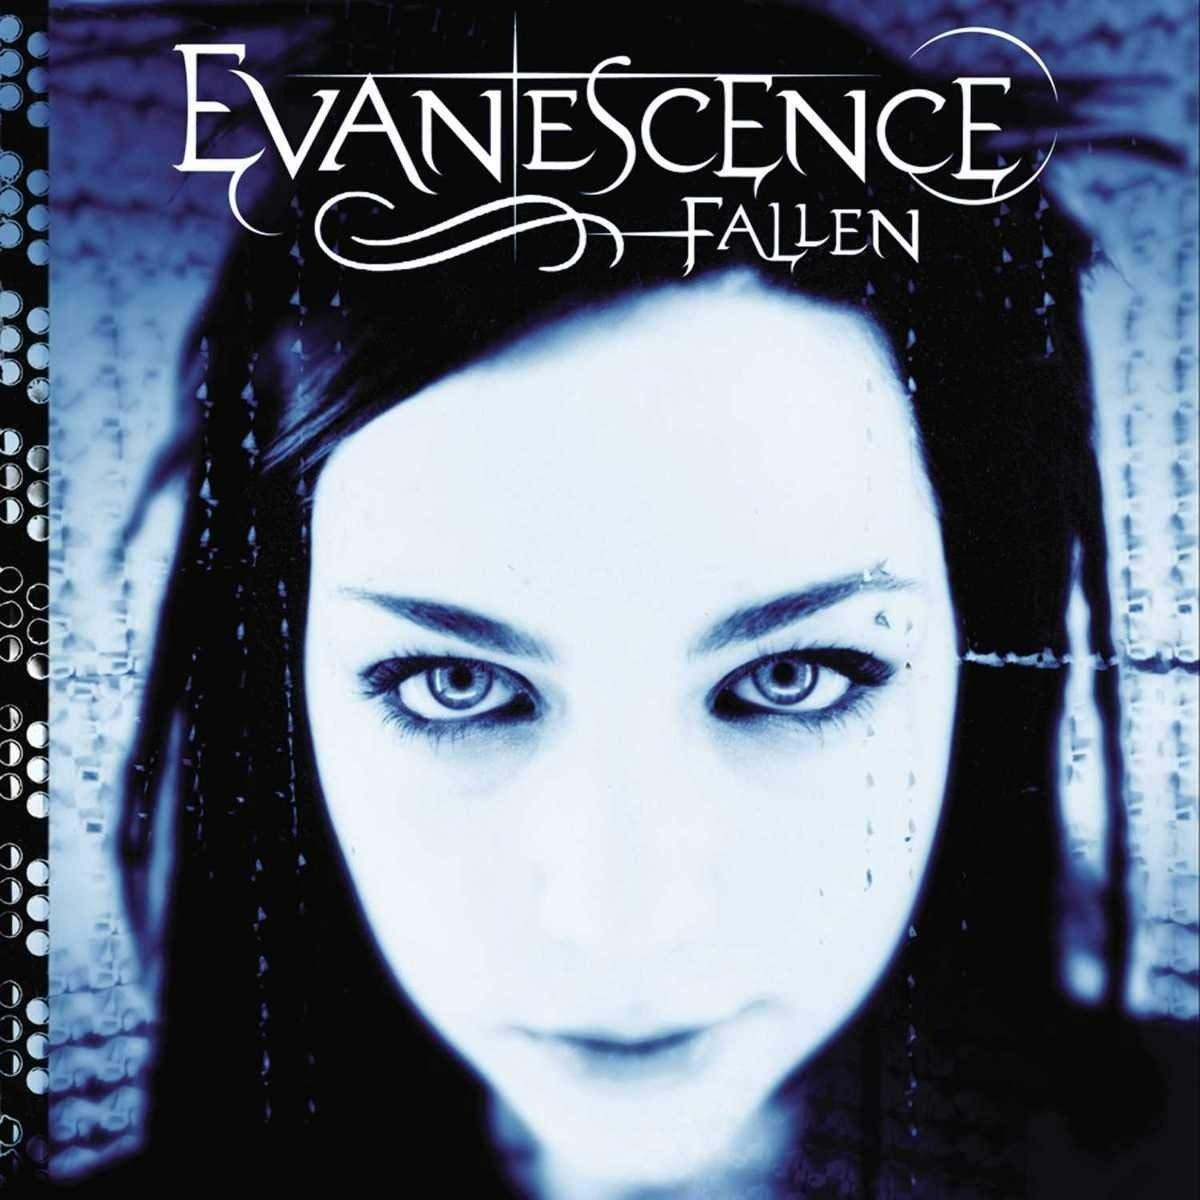 Evanescence – Fallen album cover